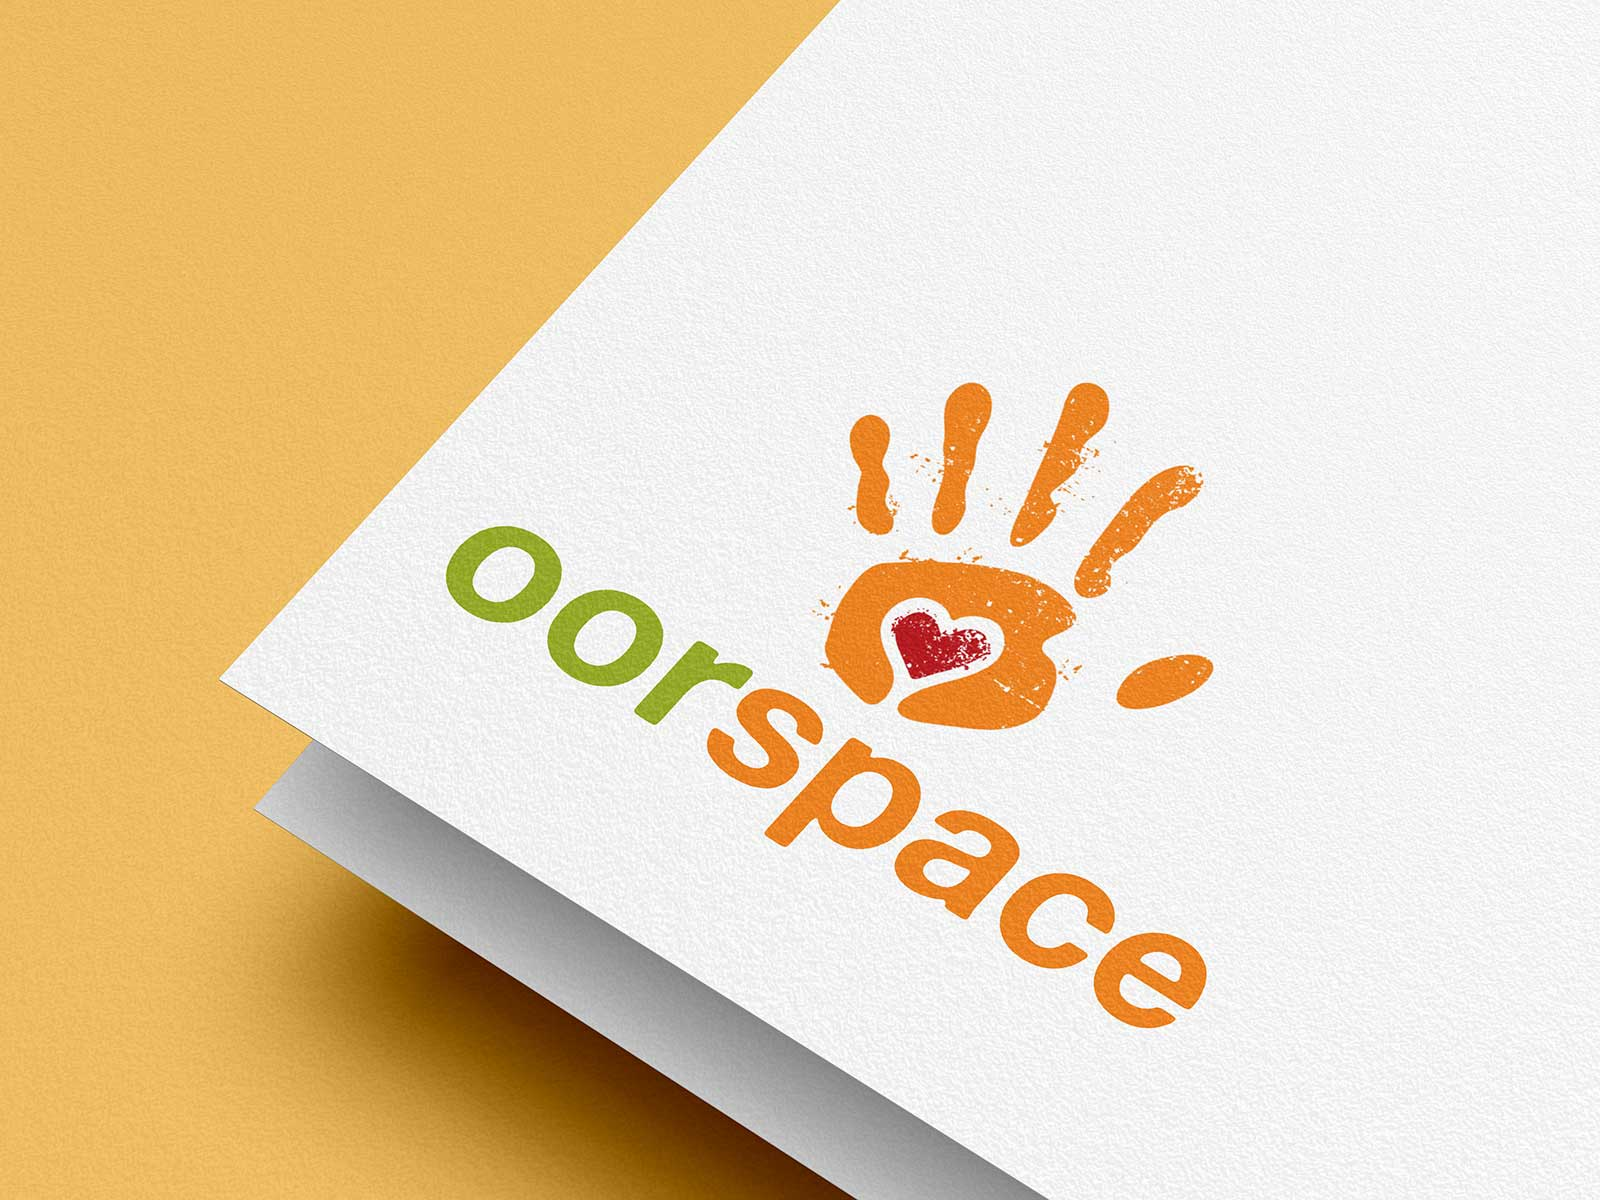 Oor Space - Logo Design